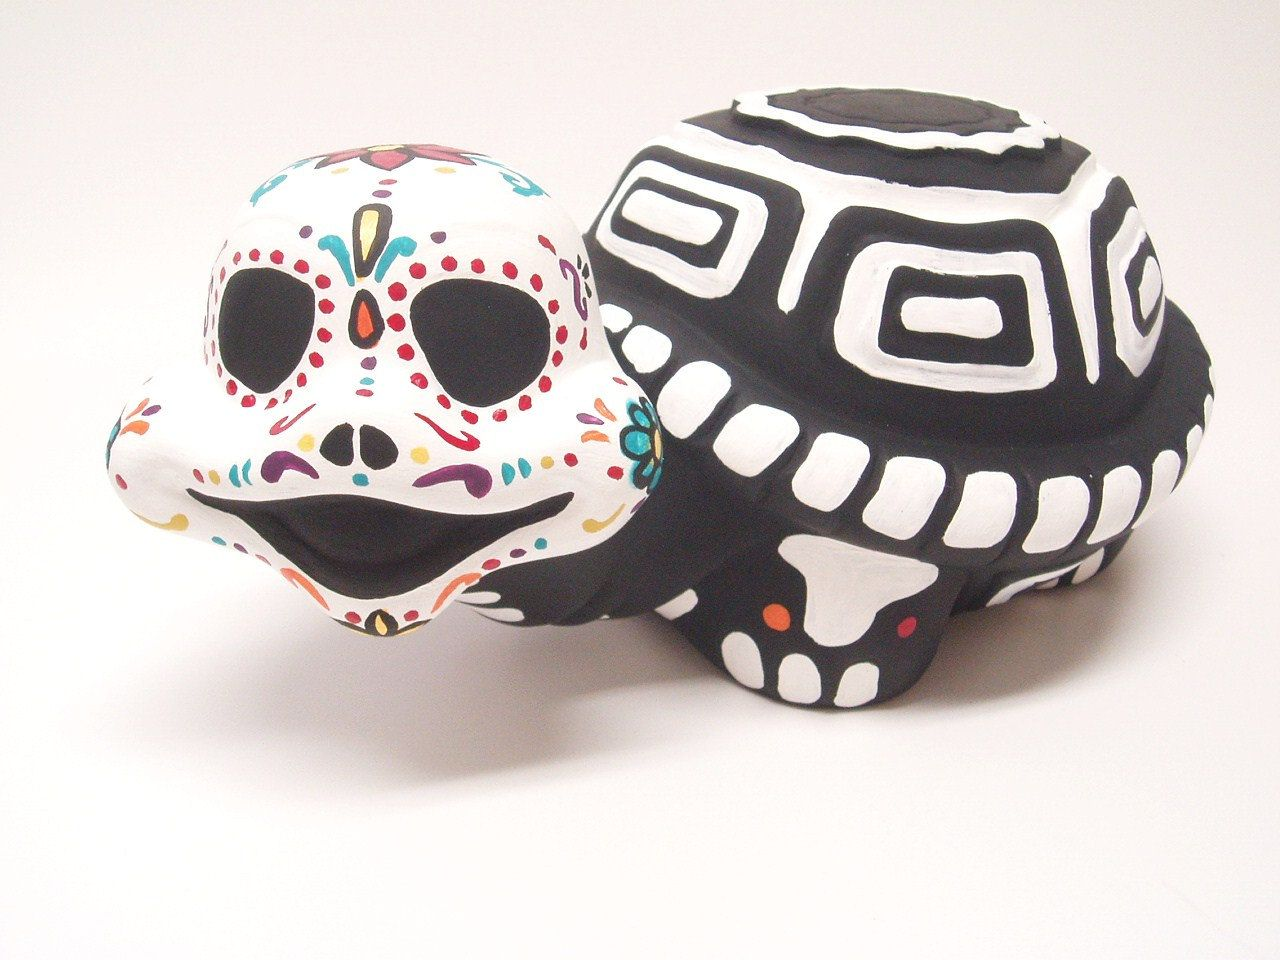 Day of the dead dia de los muertos garden ceramic turtle 3500 day of the dead dia de los muertos garden ceramic turtle 3500 dailygadgetfo Choice Image